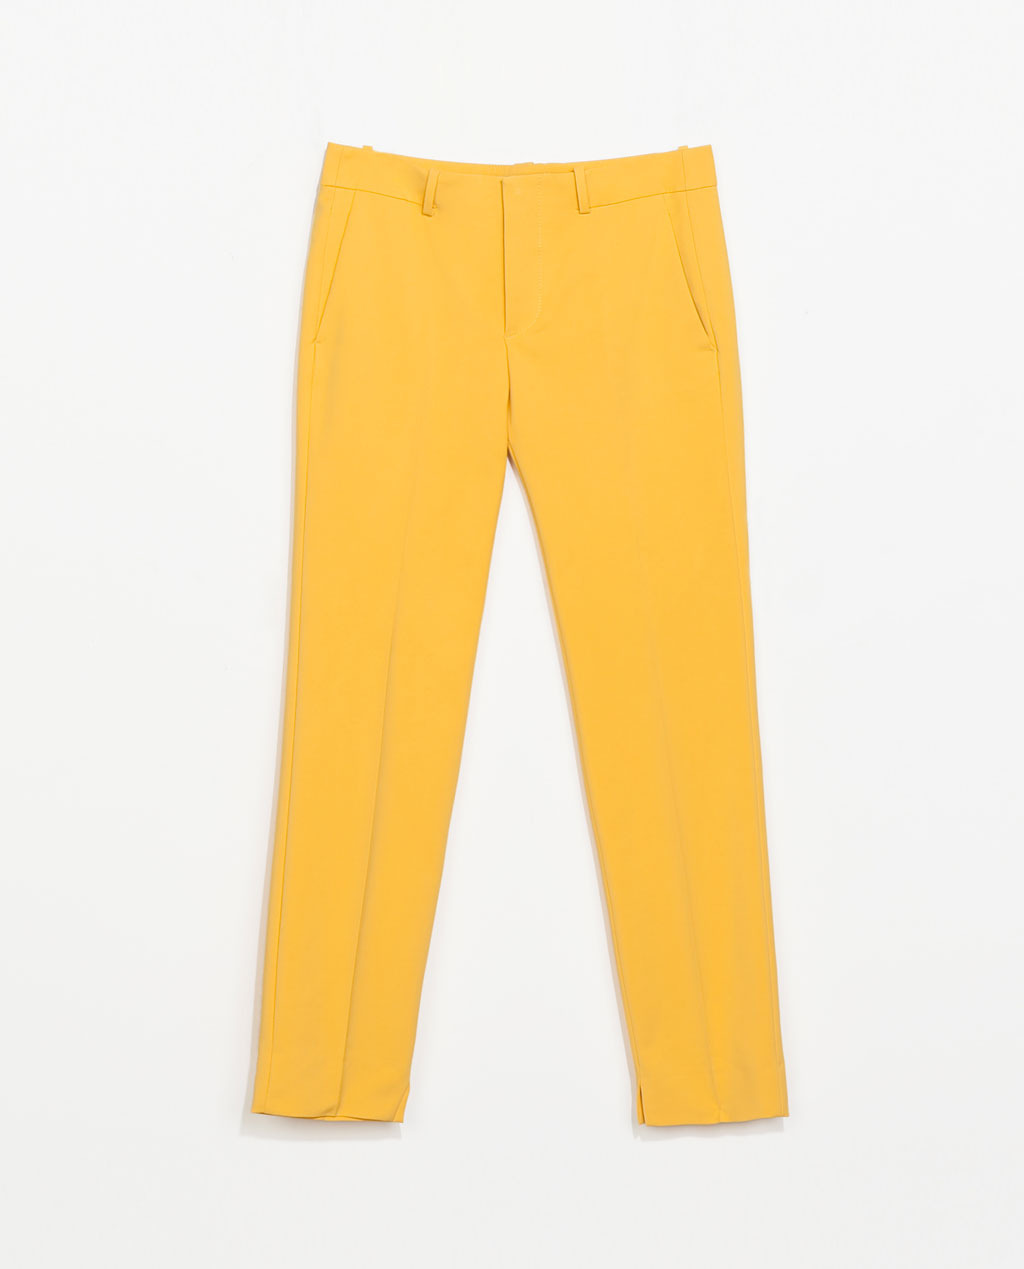 Cotton Trousers - length: standard; pattern: plain; pocket detail: small back pockets, pockets at the sides; waist: mid/regular rise; predominant colour: yellow; occasions: casual, evening, occasion, holiday, creative work; fibres: cotton - stretch; texture group: cotton feel fabrics; fit: slim leg; pattern type: fabric; style: standard; trends: hot brights; season: s/s 2014